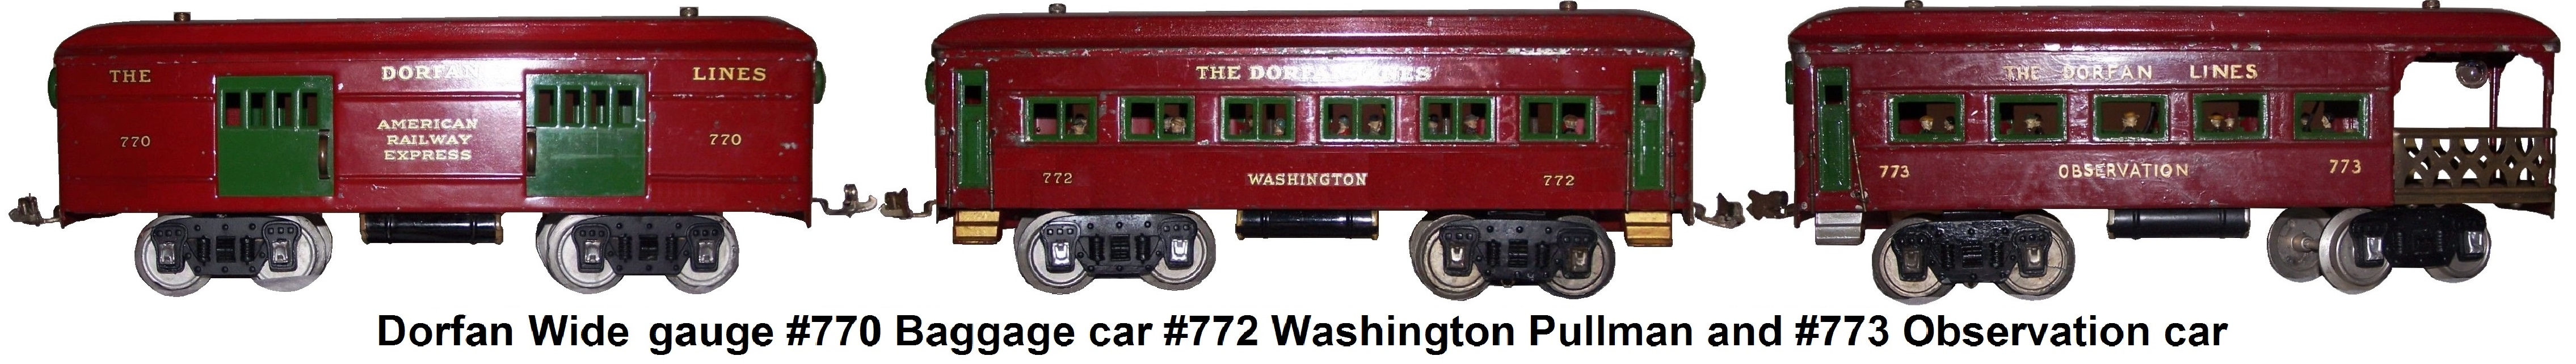 Dorfan Red Wide gauge #770 Baggage car #772 Washington Pullman and #773 Observation car